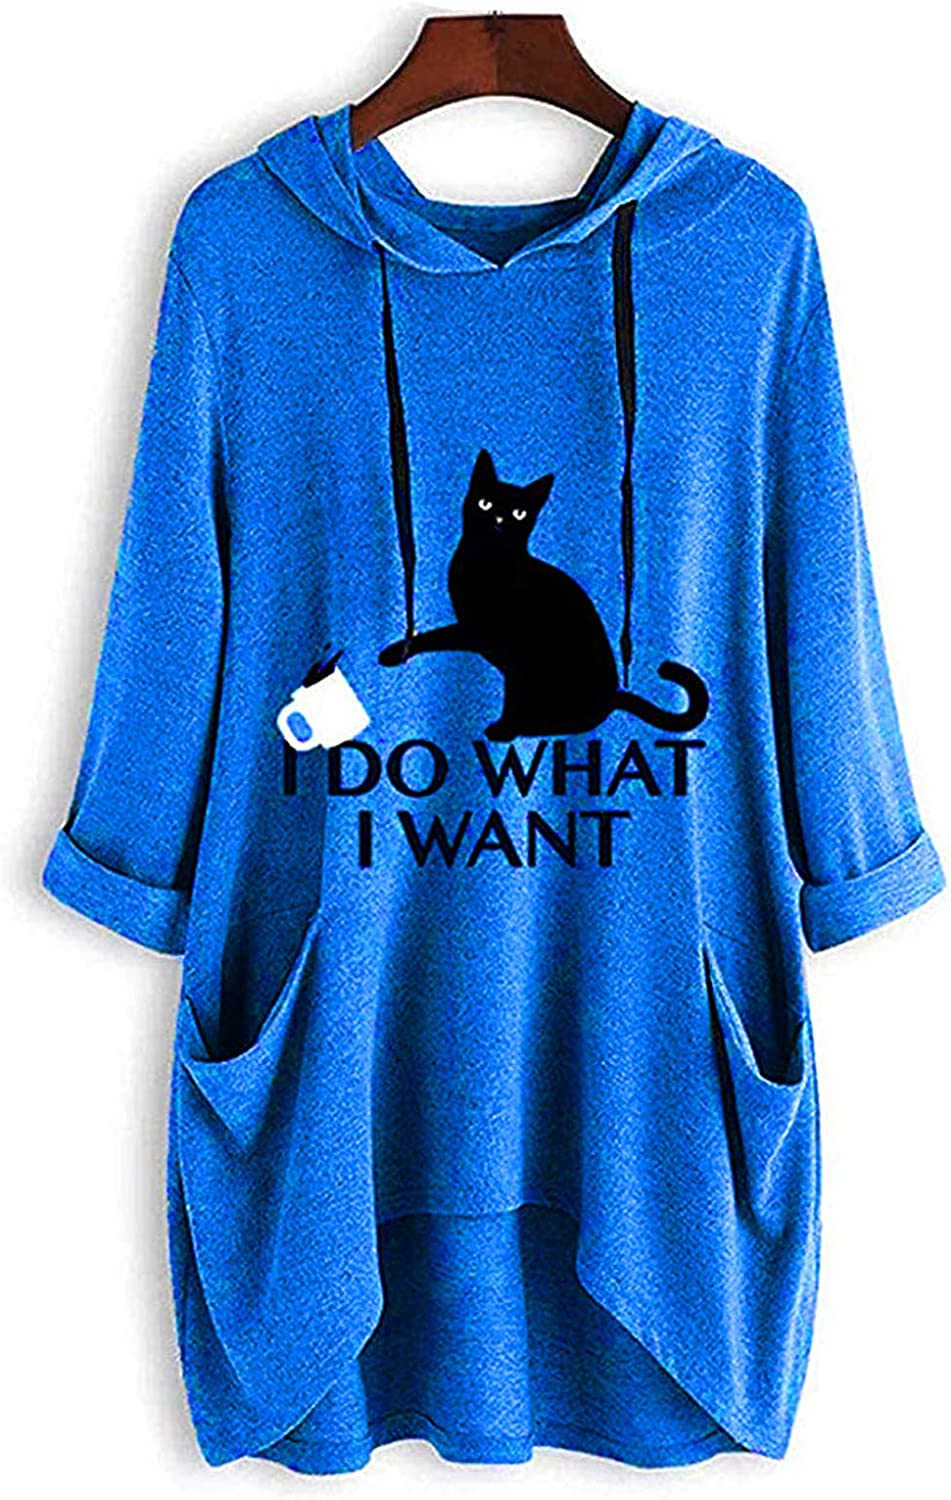 Women's Long Sleeve Hoodies I Do What I Want Letter Print Sweatshirt Pullover for Teens Girls with Cat Ear and Pocket